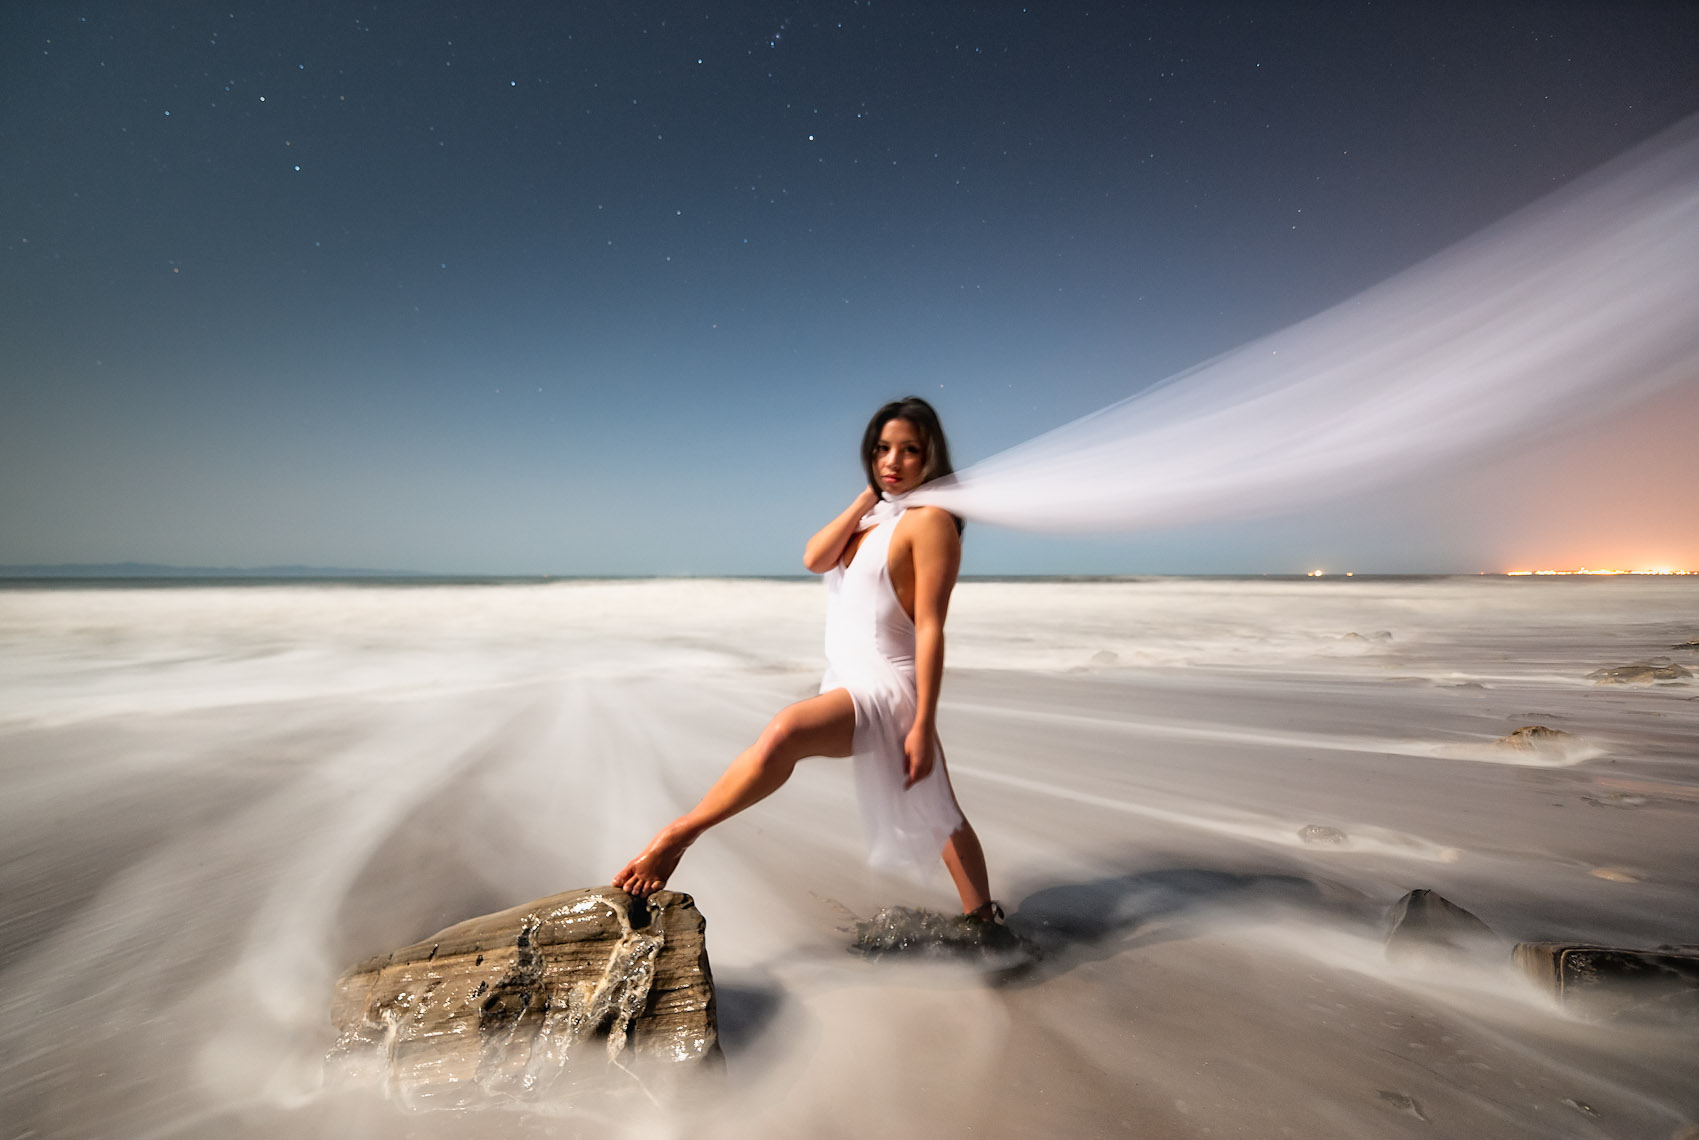 Kevin Steele - moonlit beach time exposure and a young woman